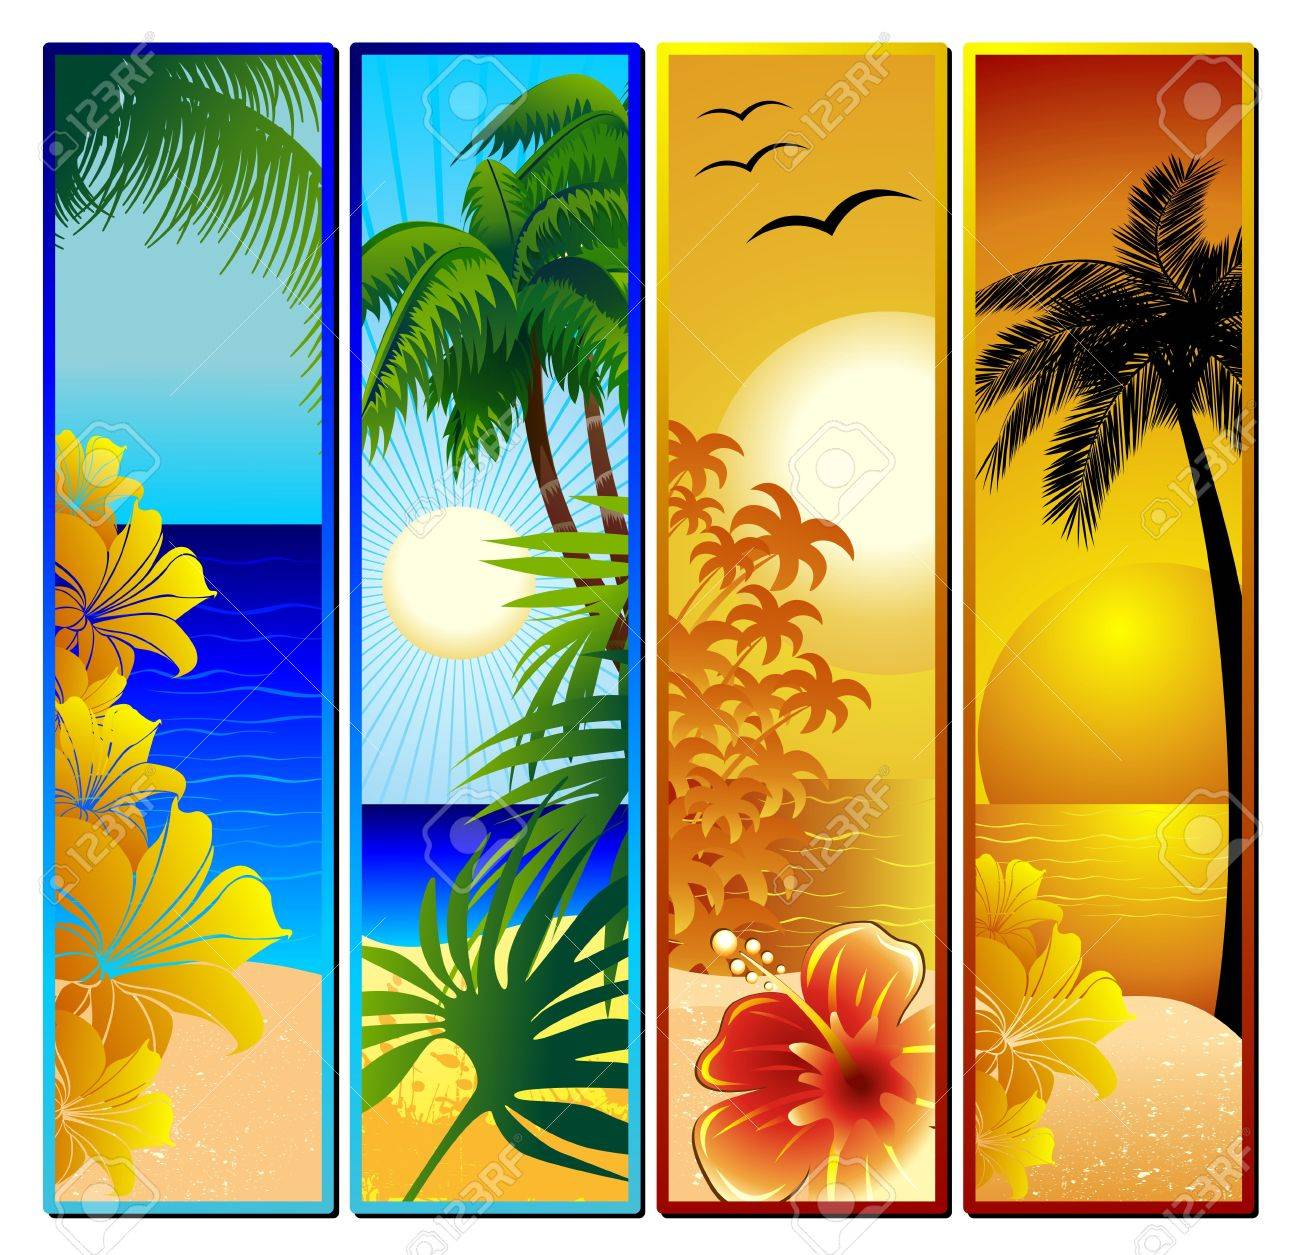 Tropical Seascape and Sunset Banners Stock Vector - 18876926